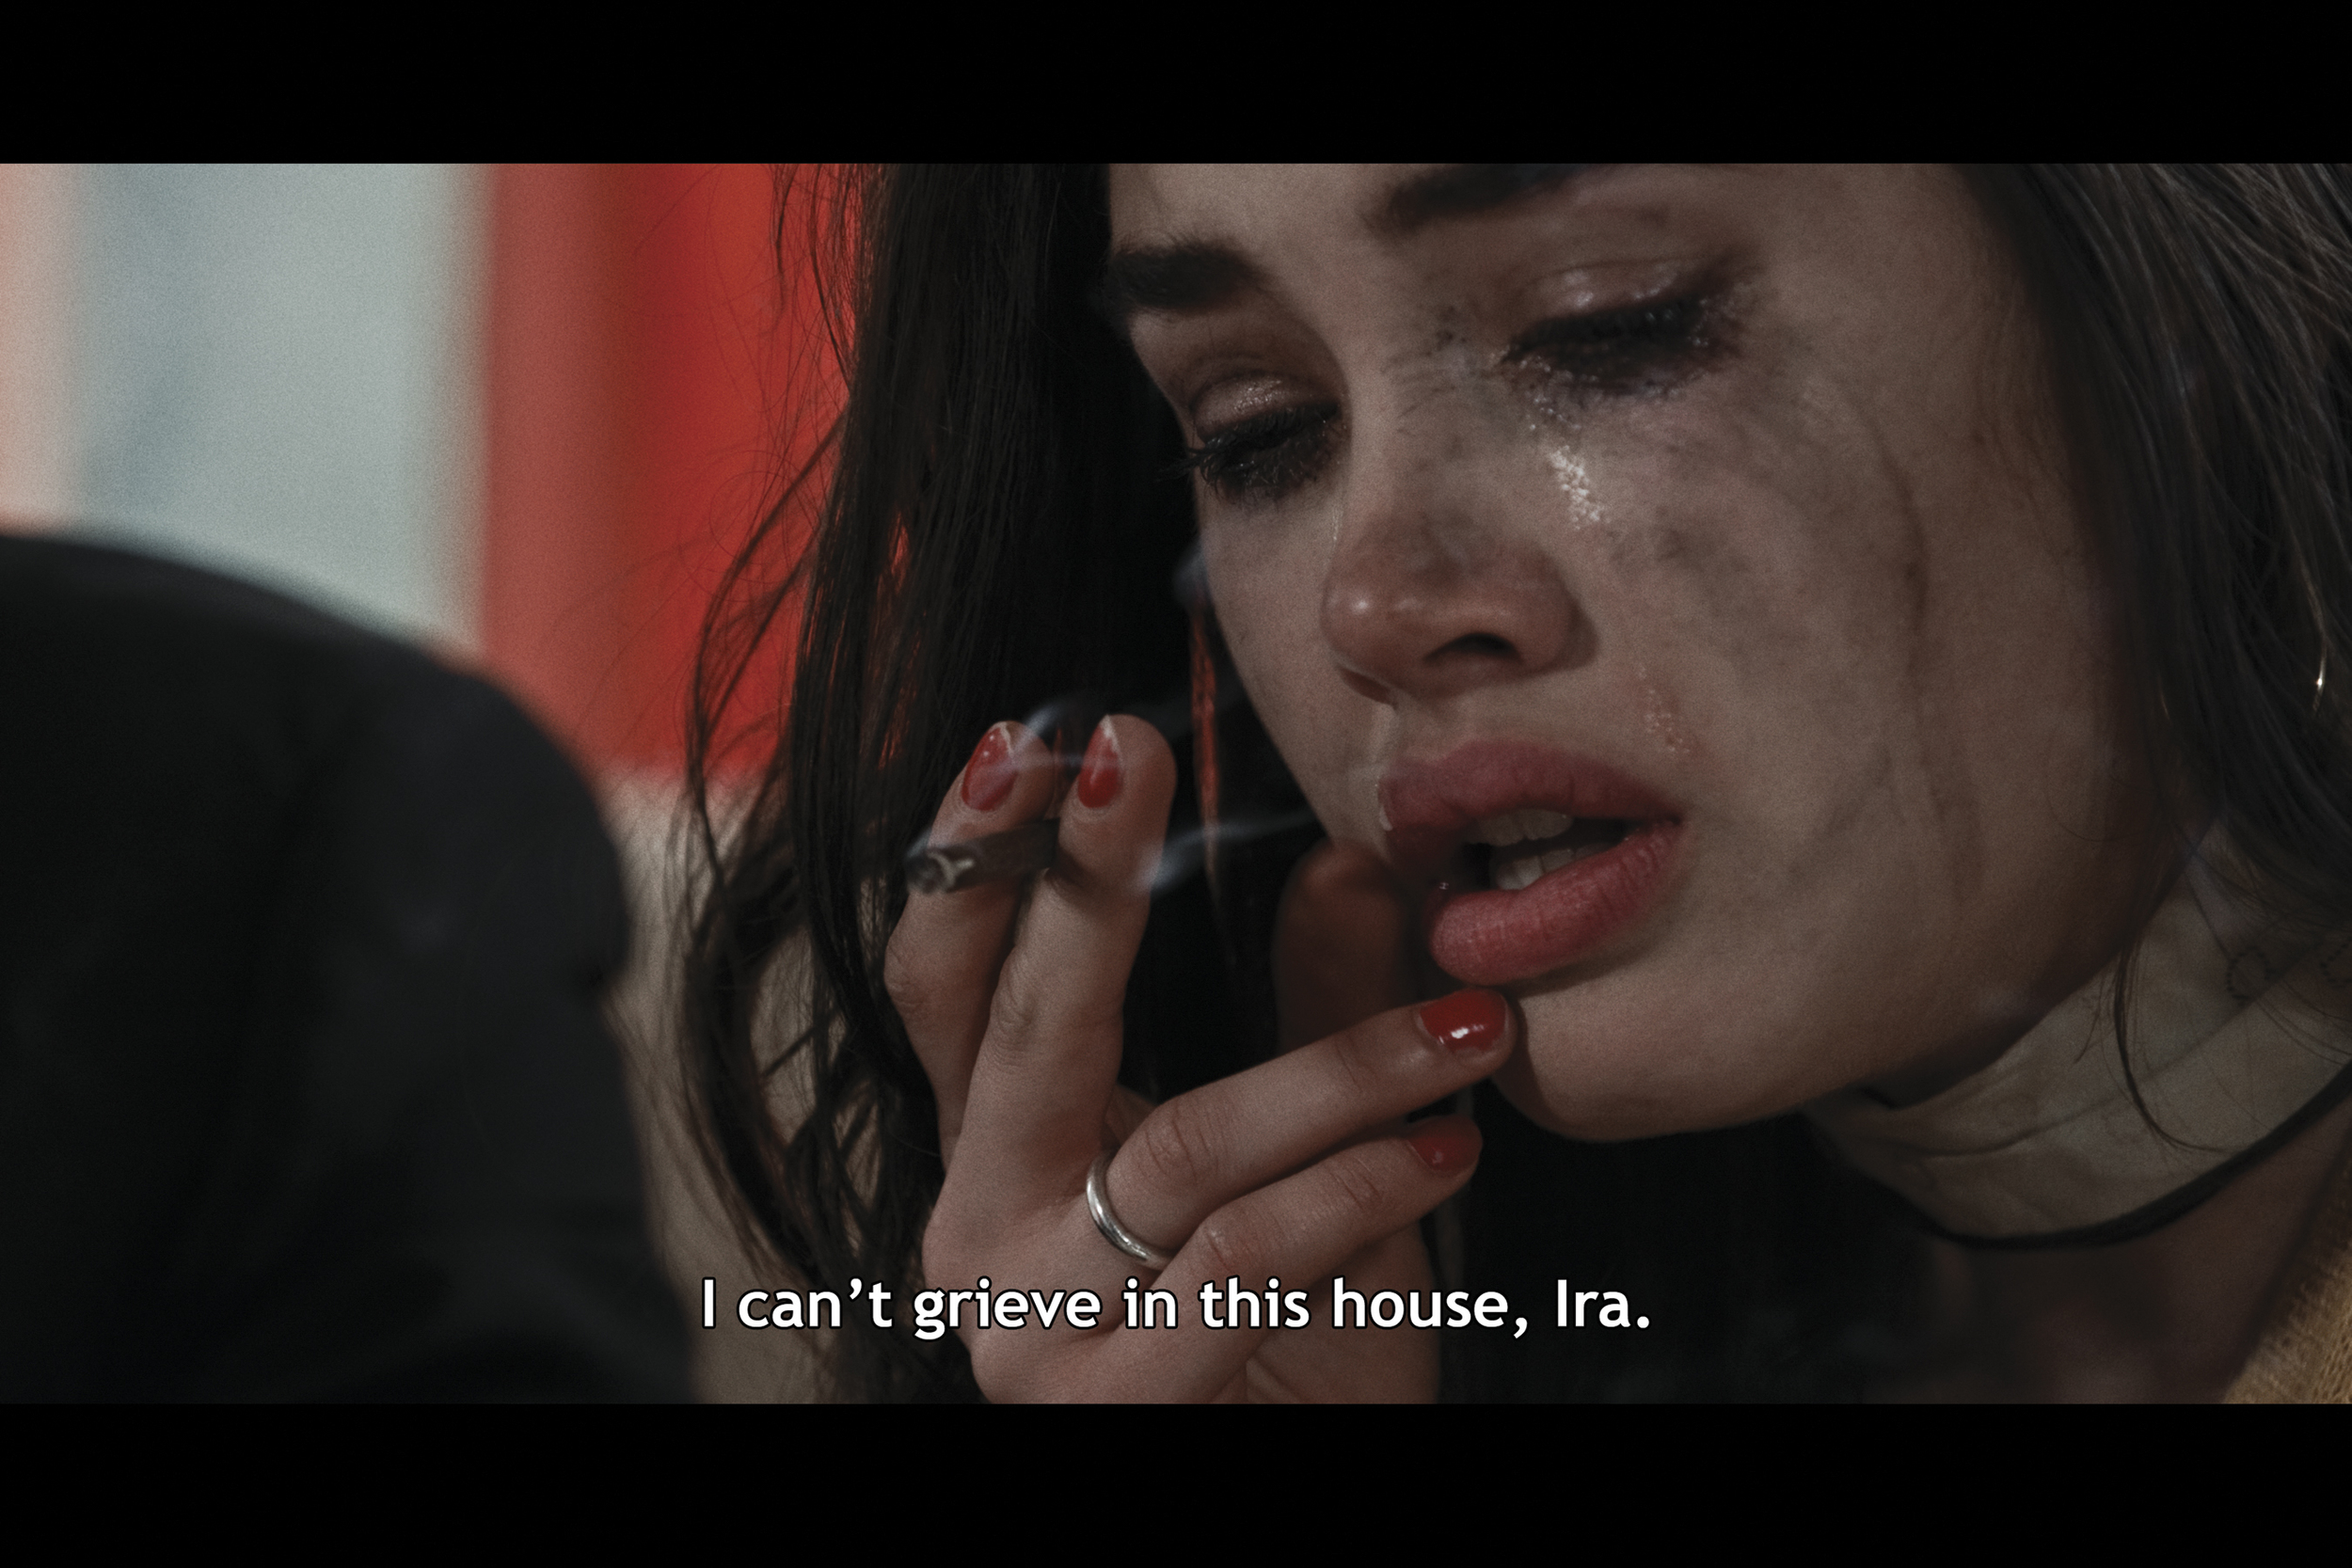 """Still 14 : Isamaya Ffrench - """"I can't grieve in this house Ira"""""""